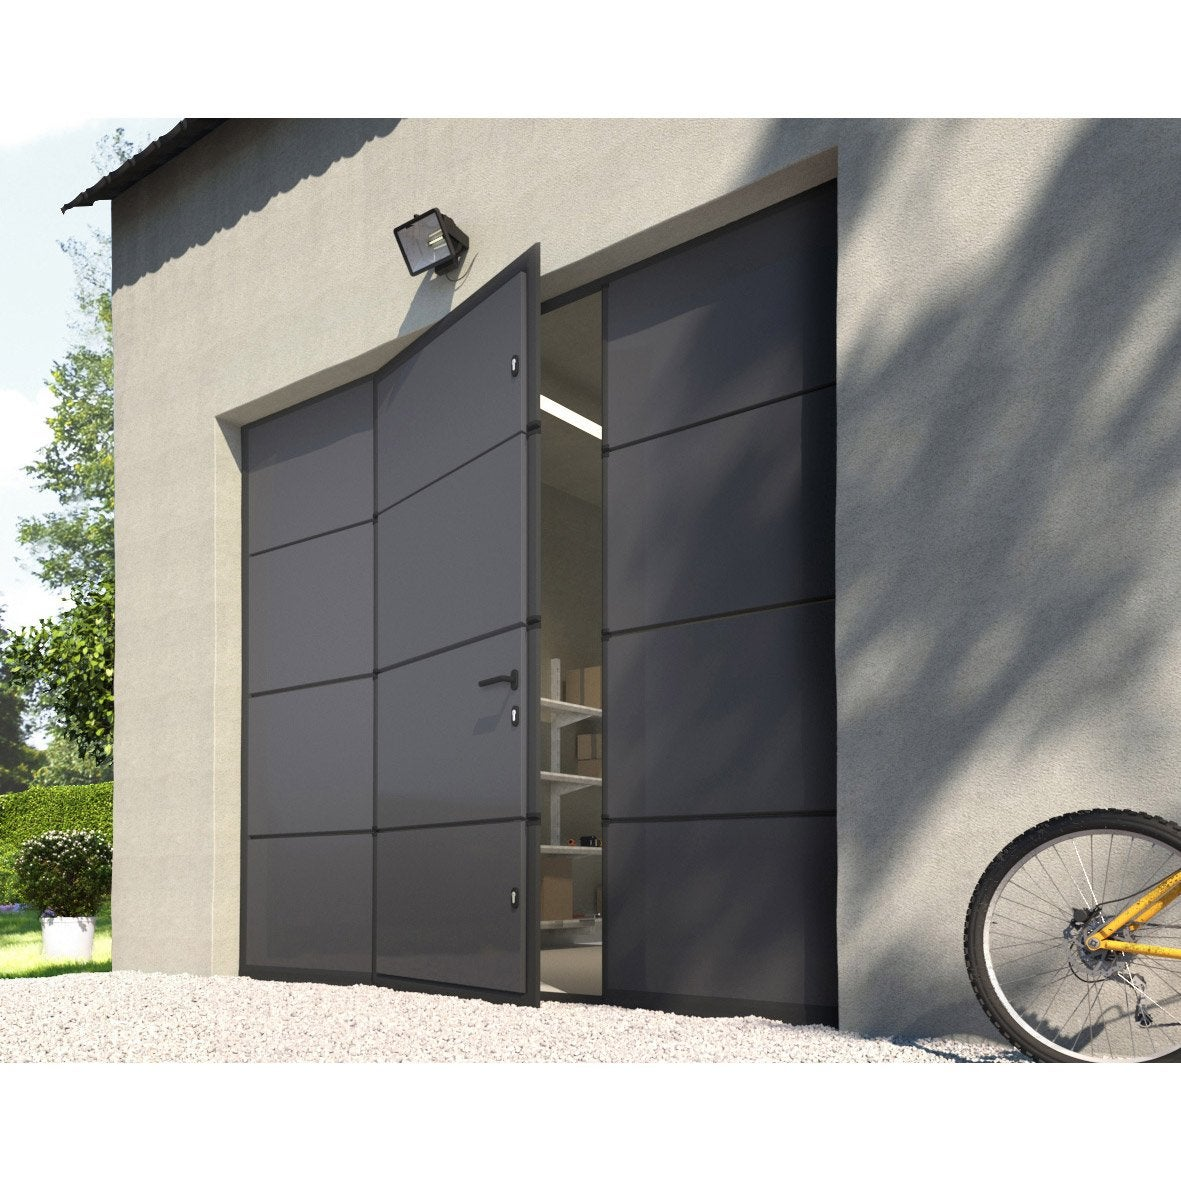 Porte de garage sectionnelle motoris e artens essentiel - Porte de garage sectionnelle avec portillon leroy merlin ...